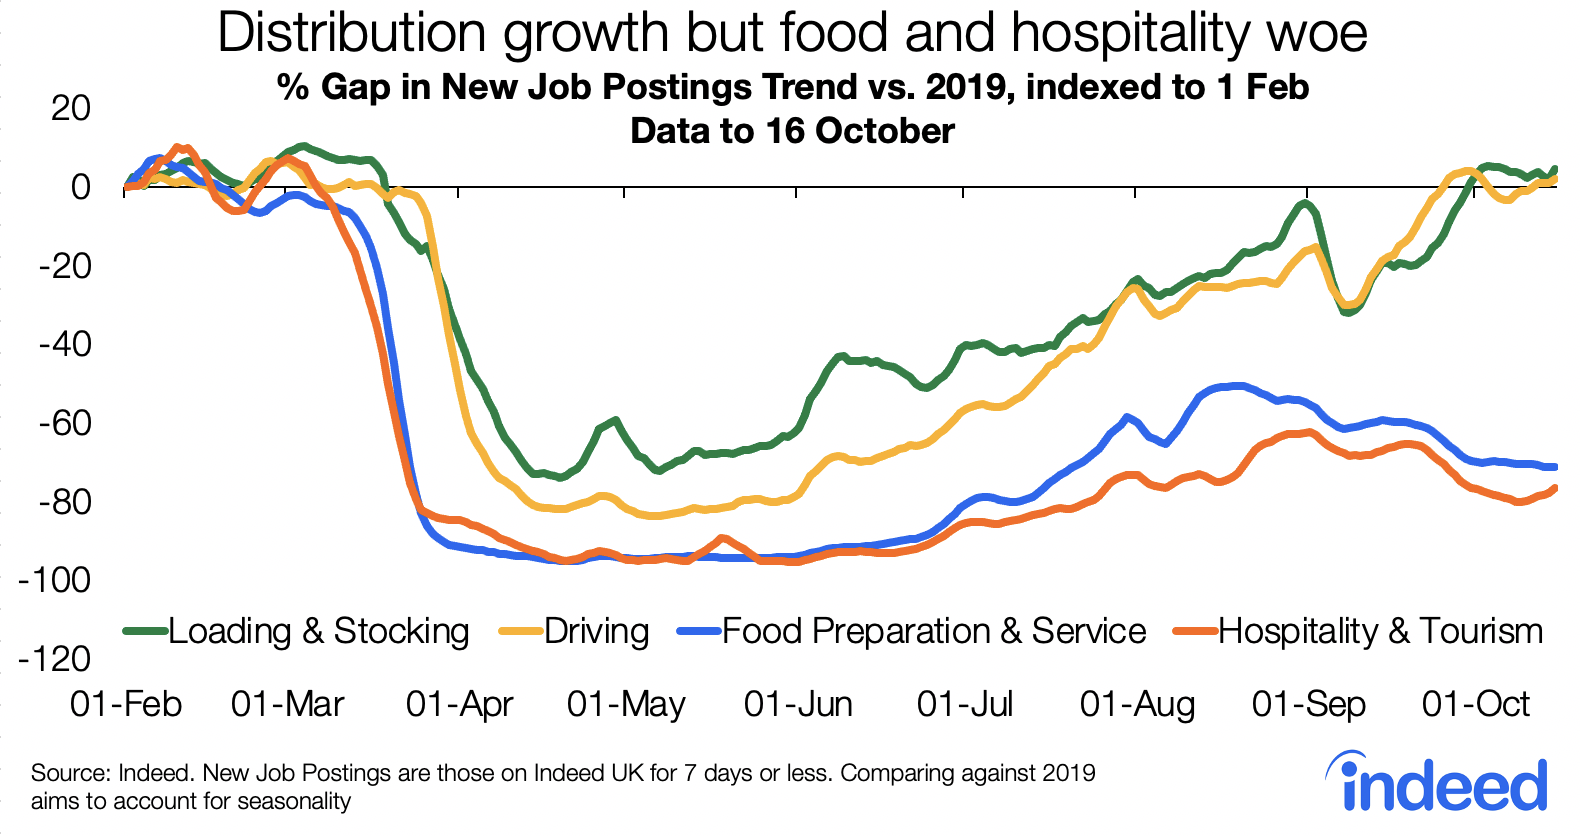 Line graph distribution growth but food and hospitality woe